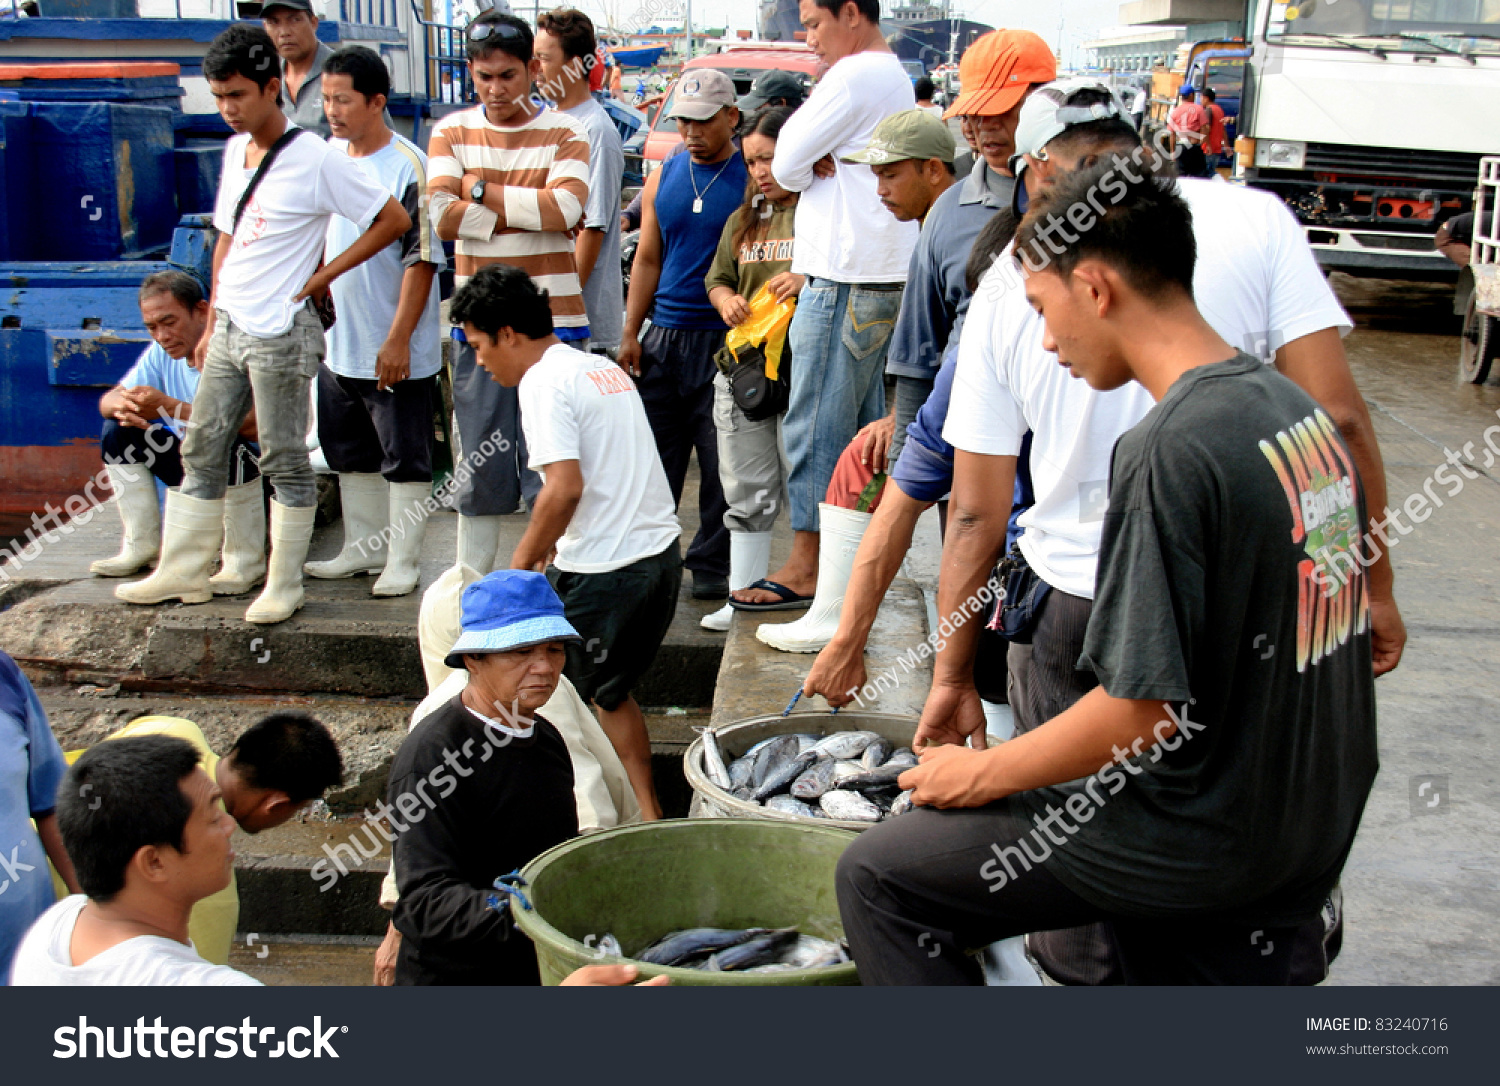 general santos city fishing industry from General santos city—mayor ronnel rivera has admitted that the tuna industry, which has propelled the city to growth for decades now, is getting stagnant.